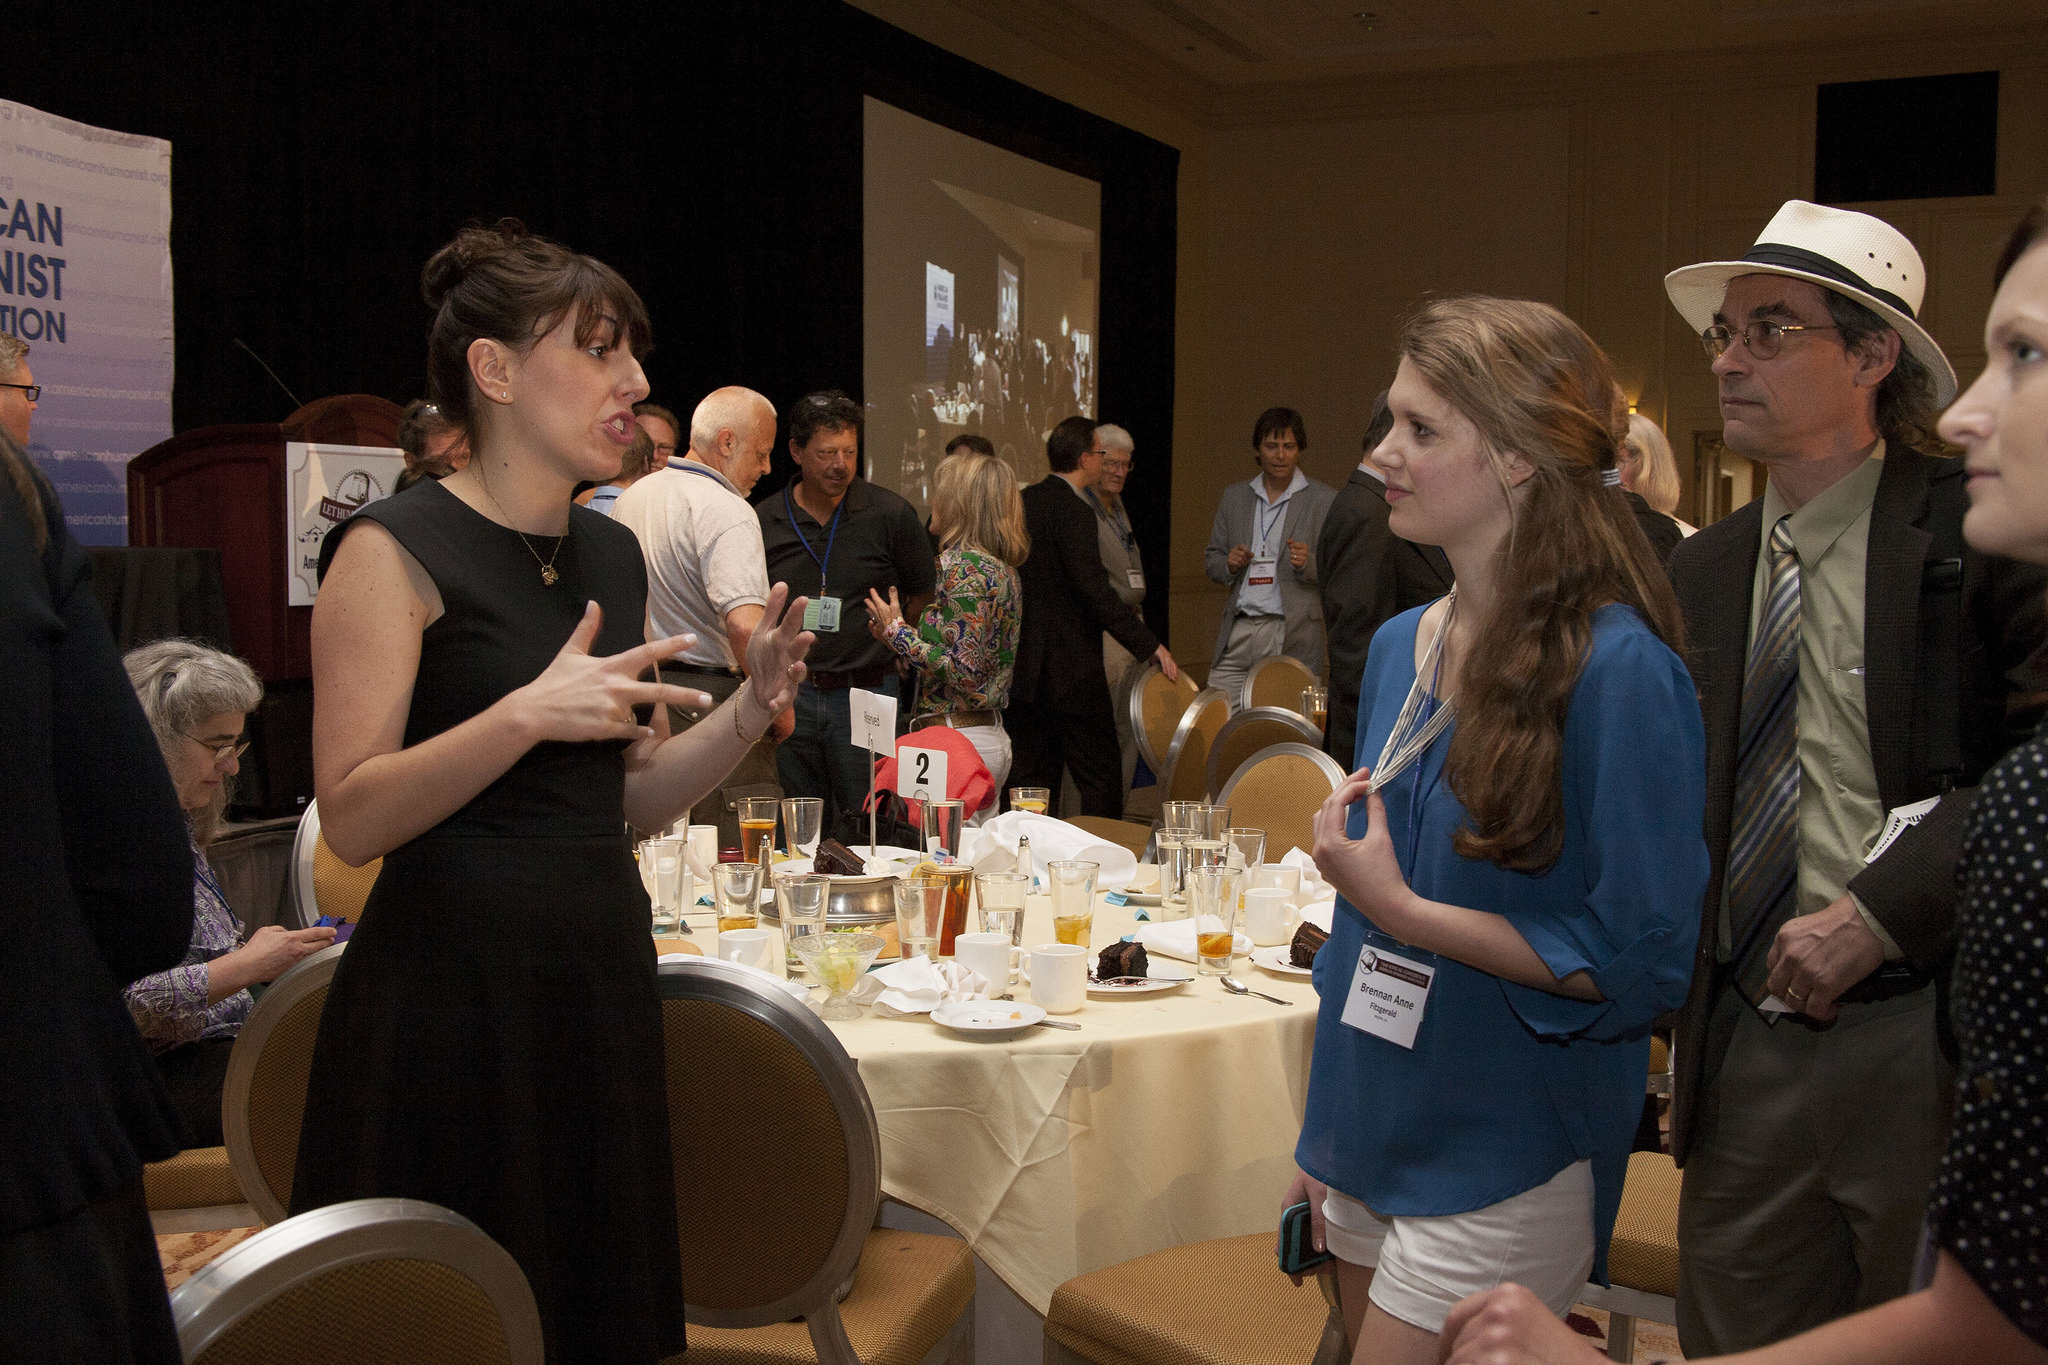 Jessica Valenti talks with conference attendees after her awards speech